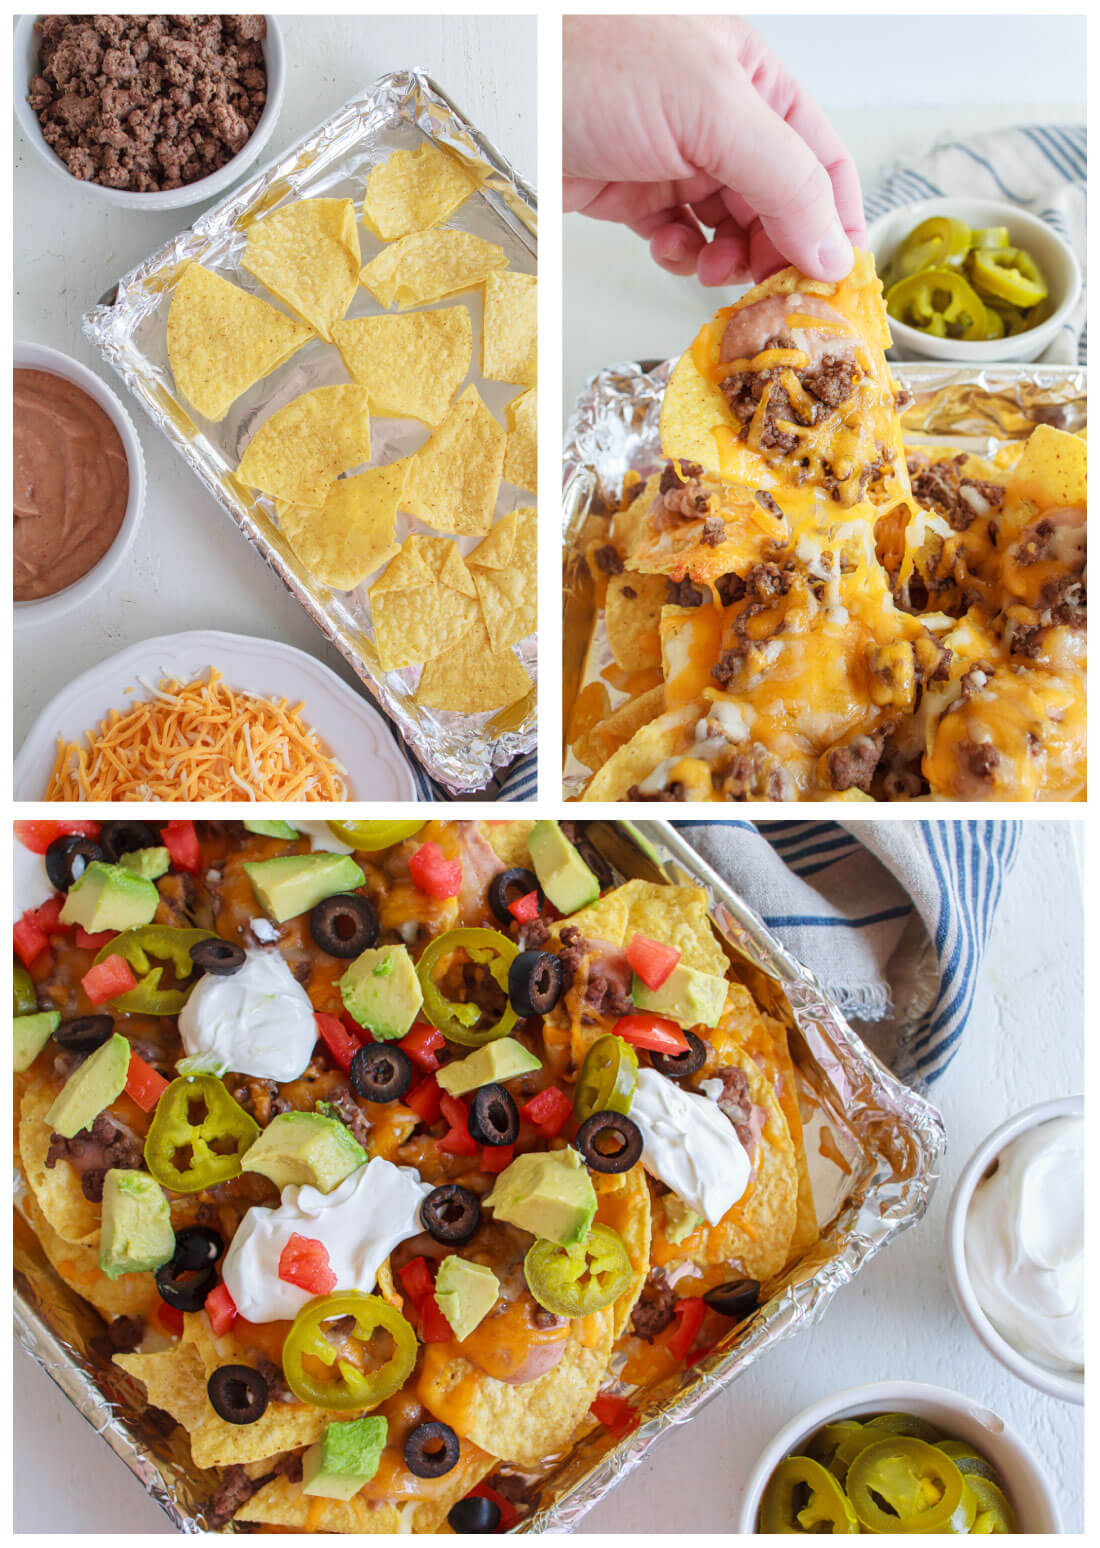 How to make nachos in the oven